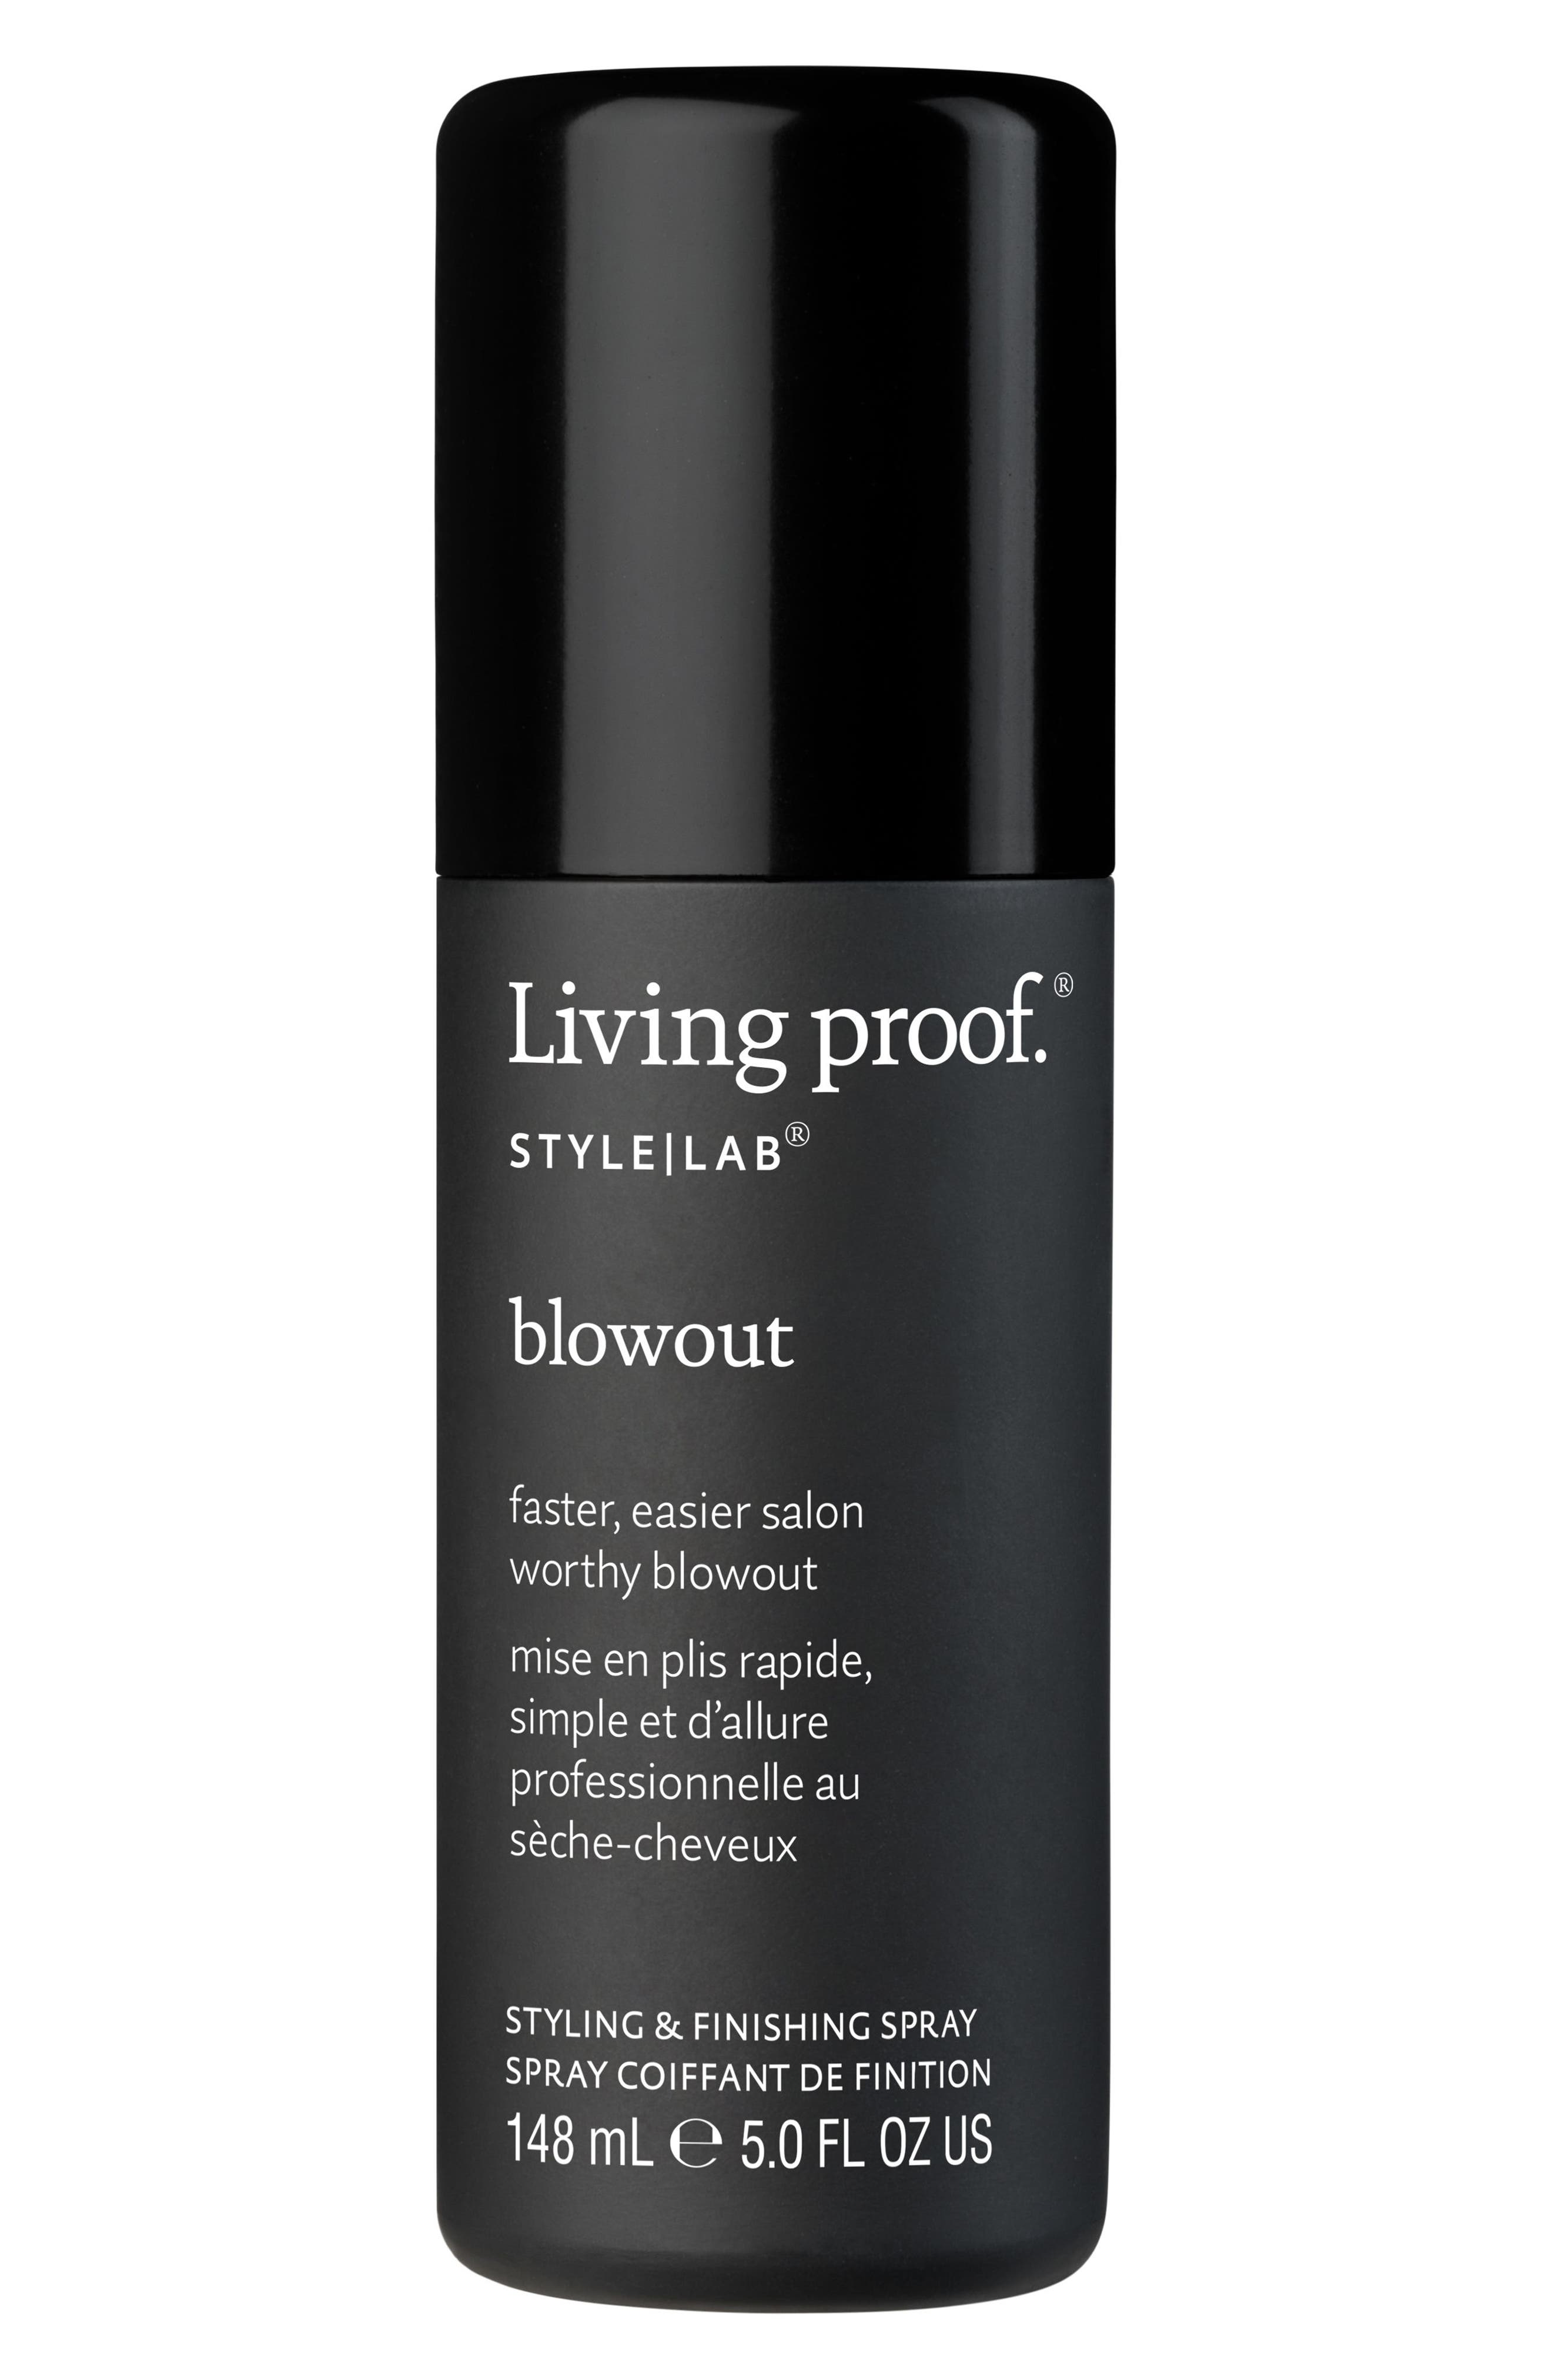 Living proof® Blowout Styling & Finishing Spray